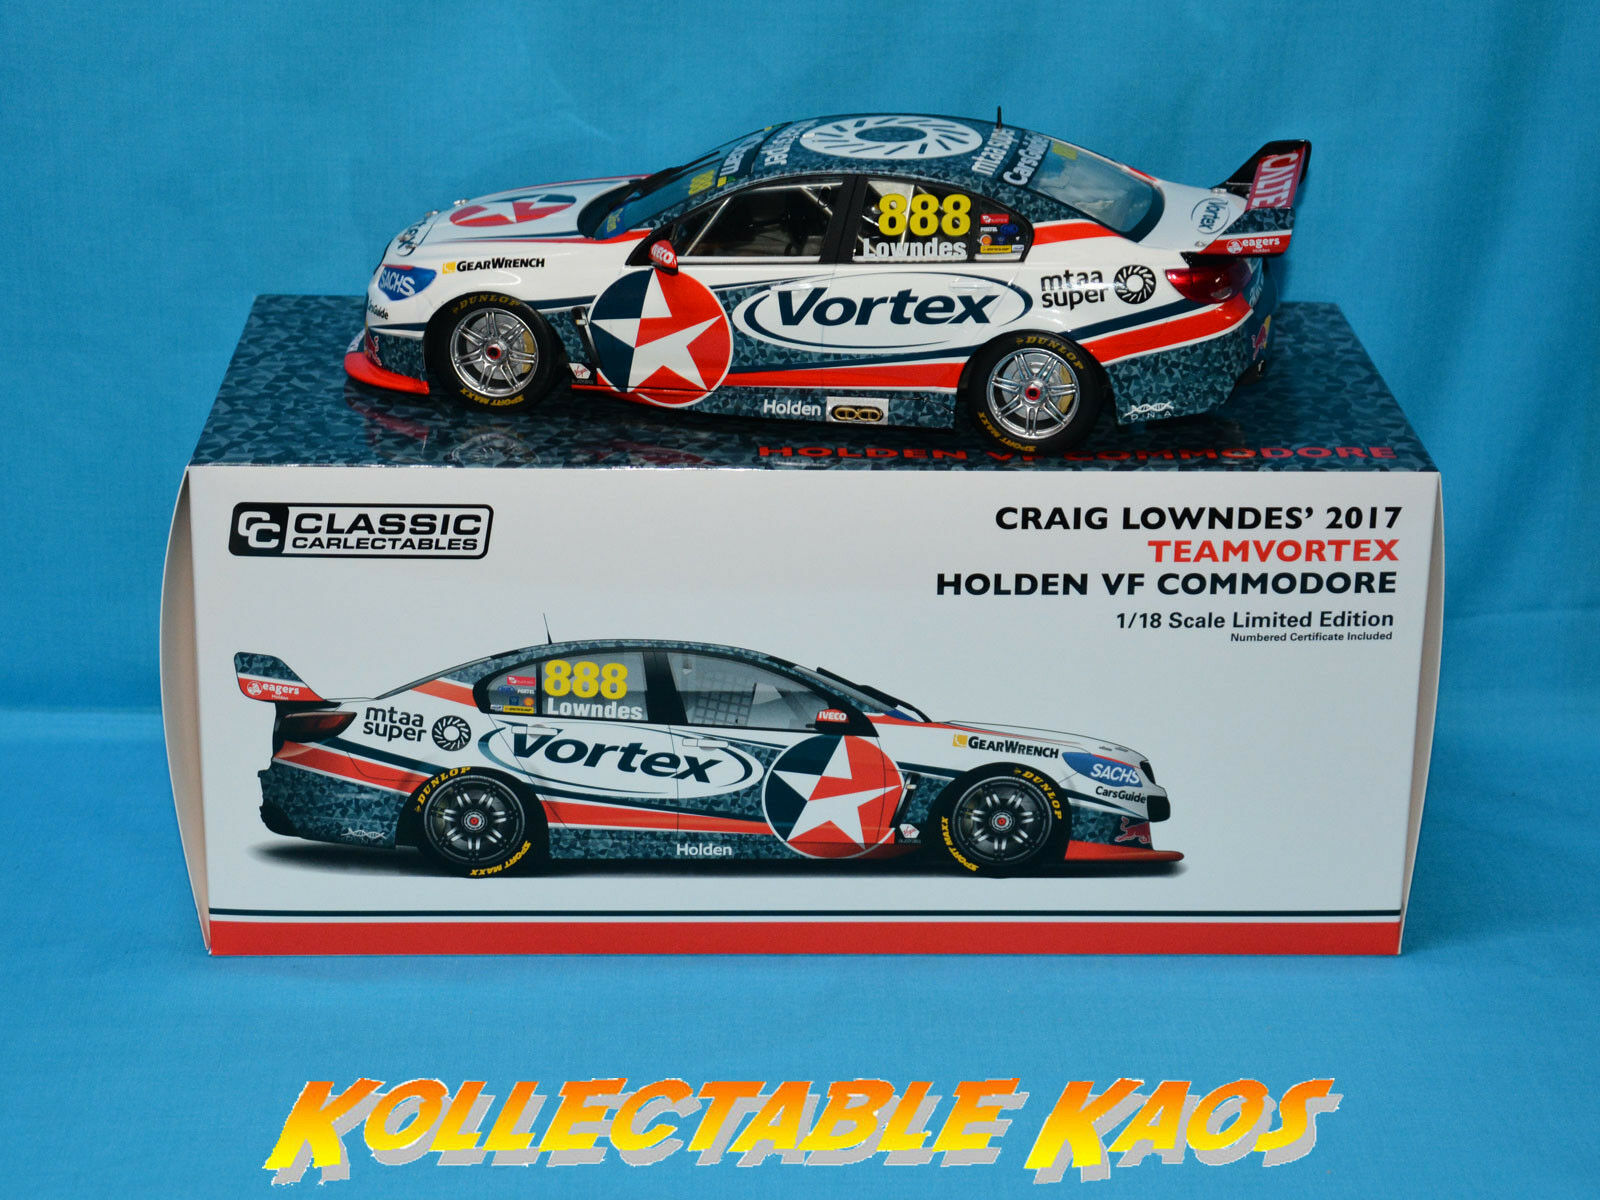 1 18 Classics - 2017 teamvortex-Holden vf Commodore-Craig Lowndes